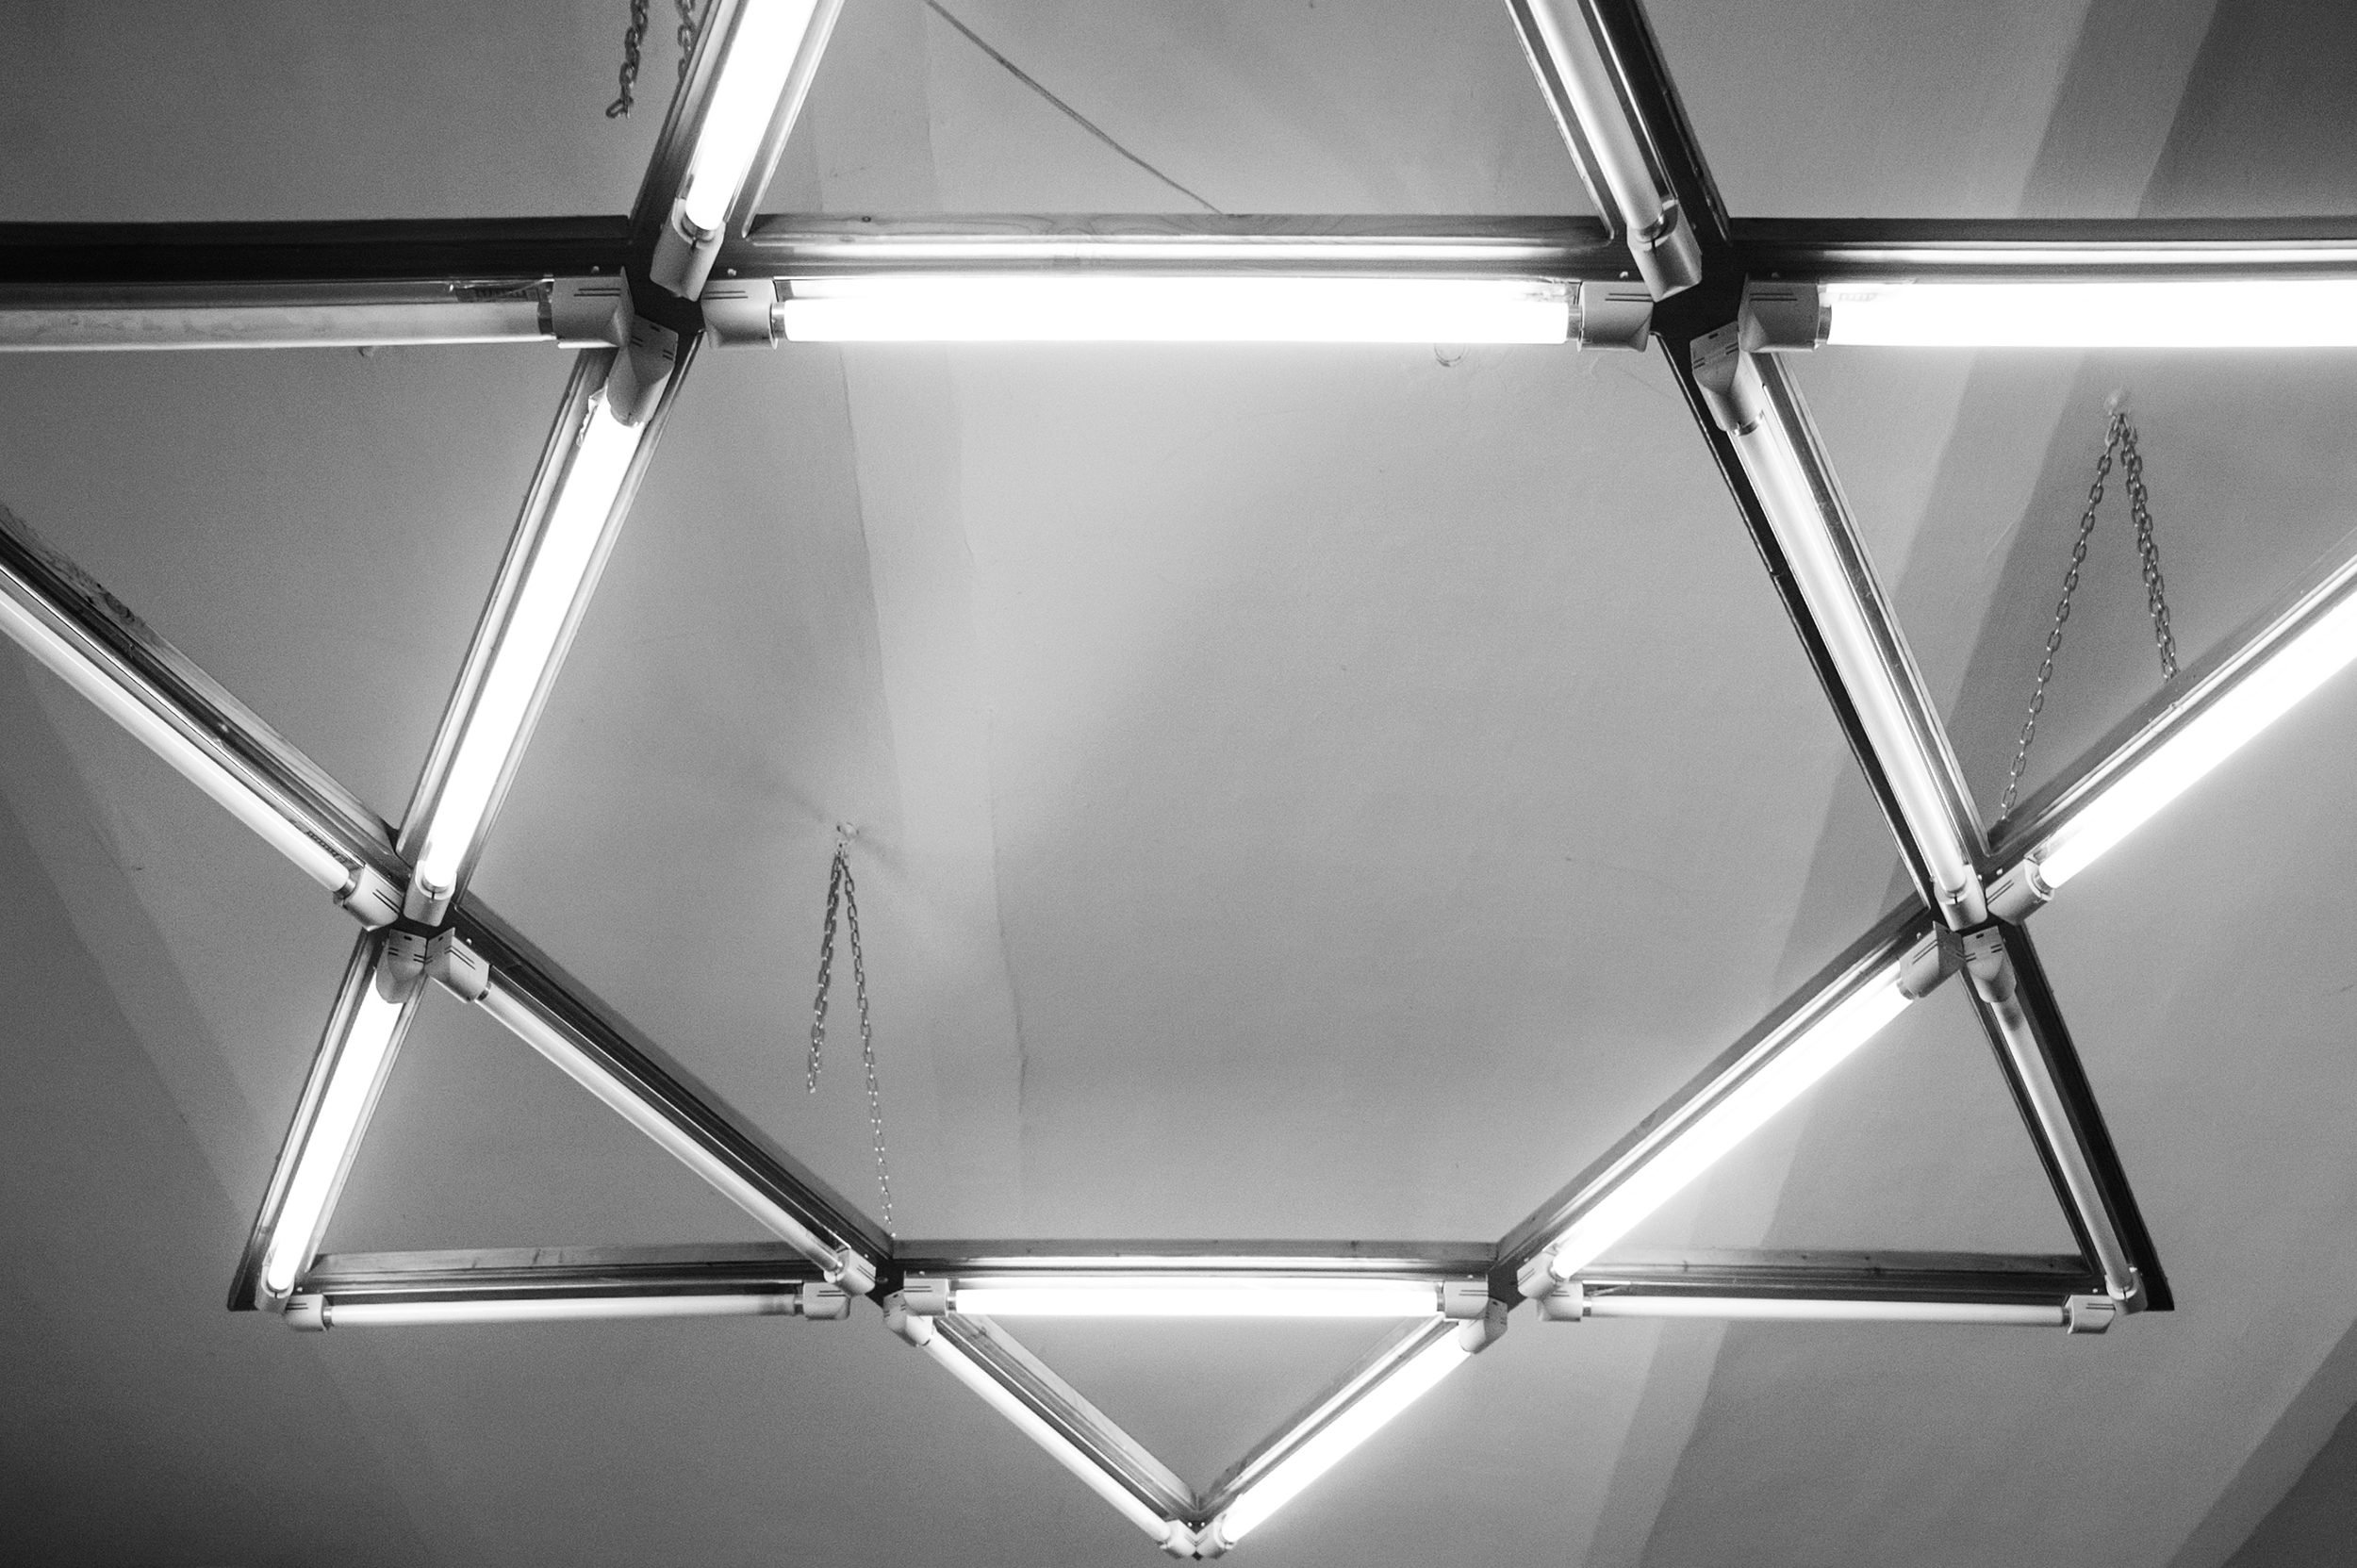 The Star of David-shaped flourescent lights flicker over the small meeting room inside the Jewish Community Center in Oradea, Romania on January 12, 2015.